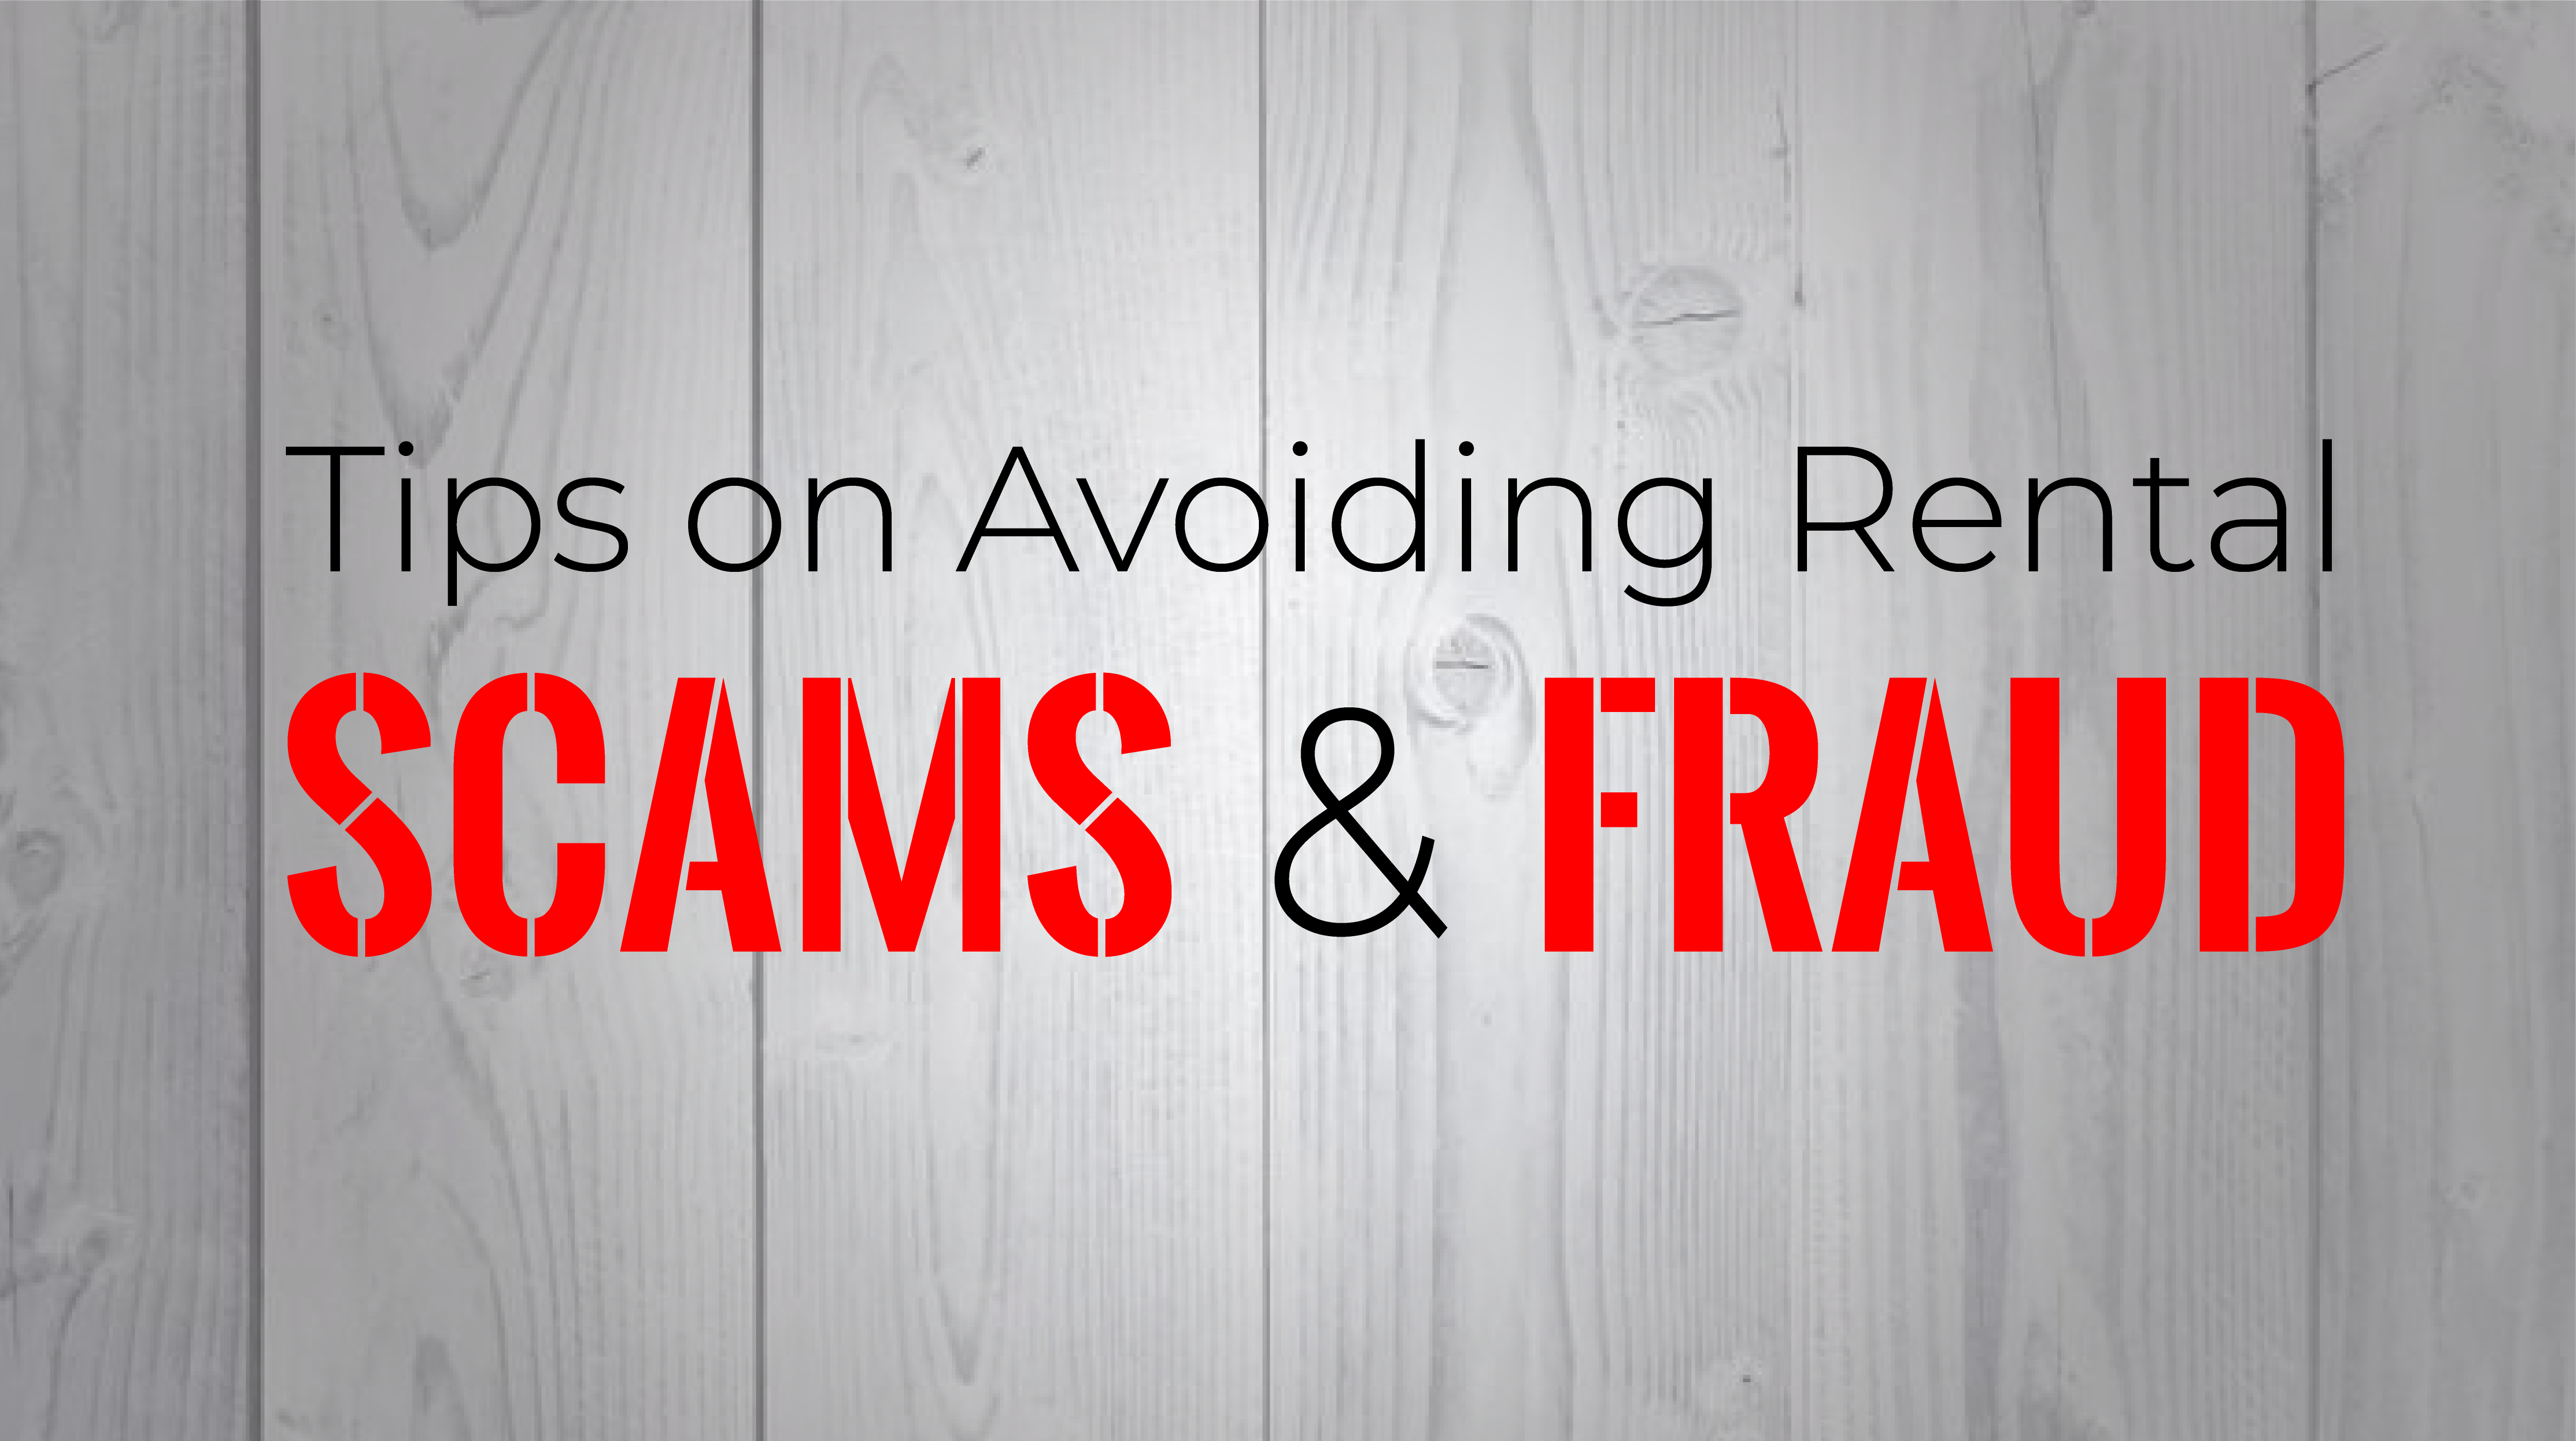 Avoid Rental Scams and Fraud